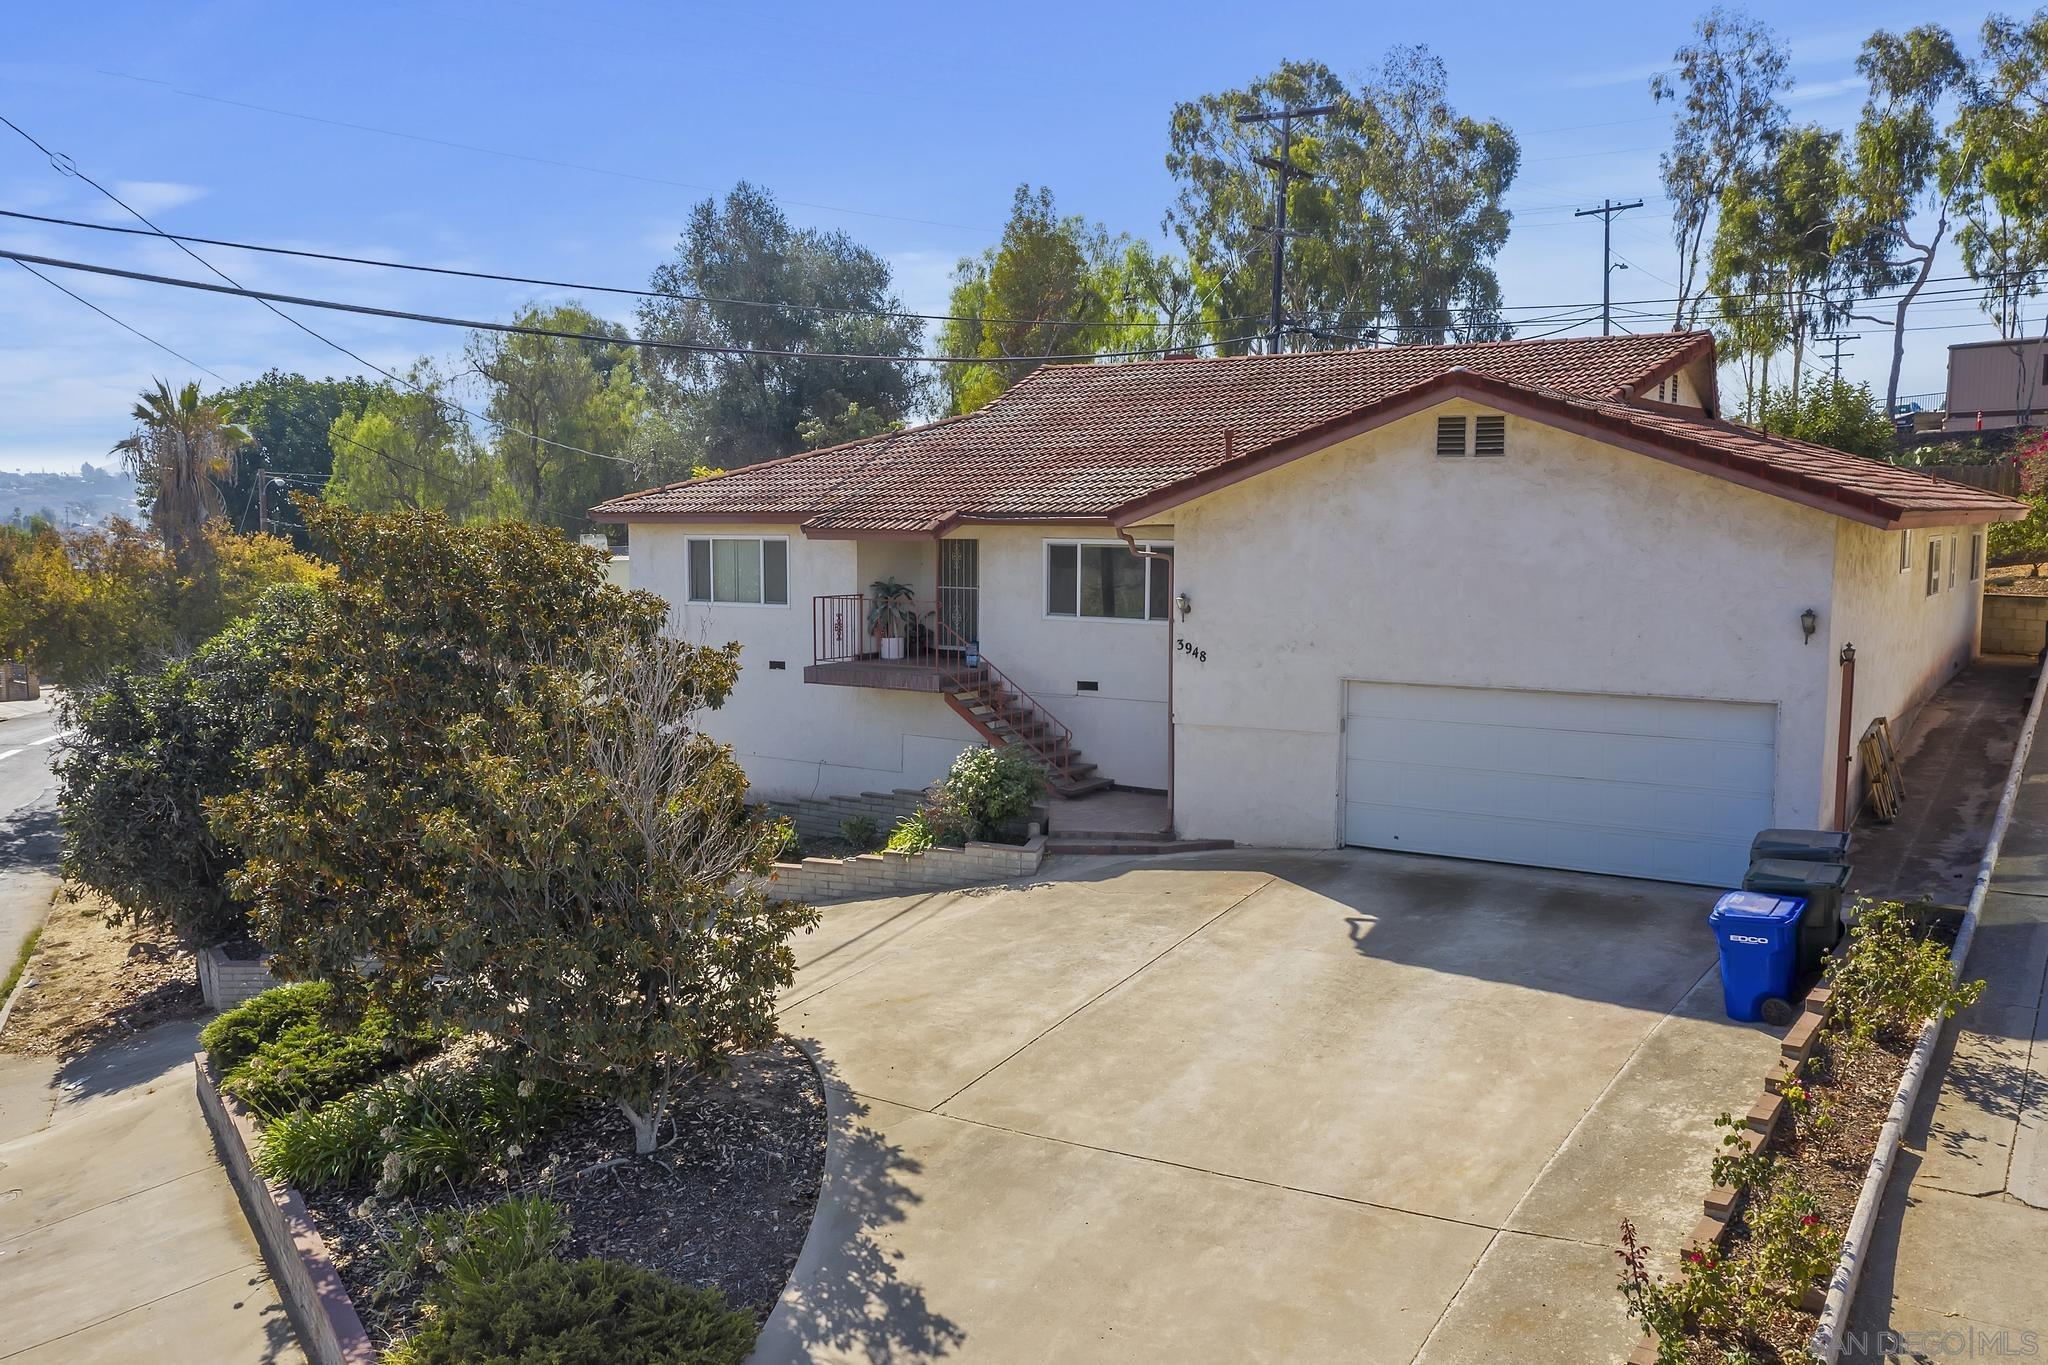 4-Bedroom House In Spring Valley